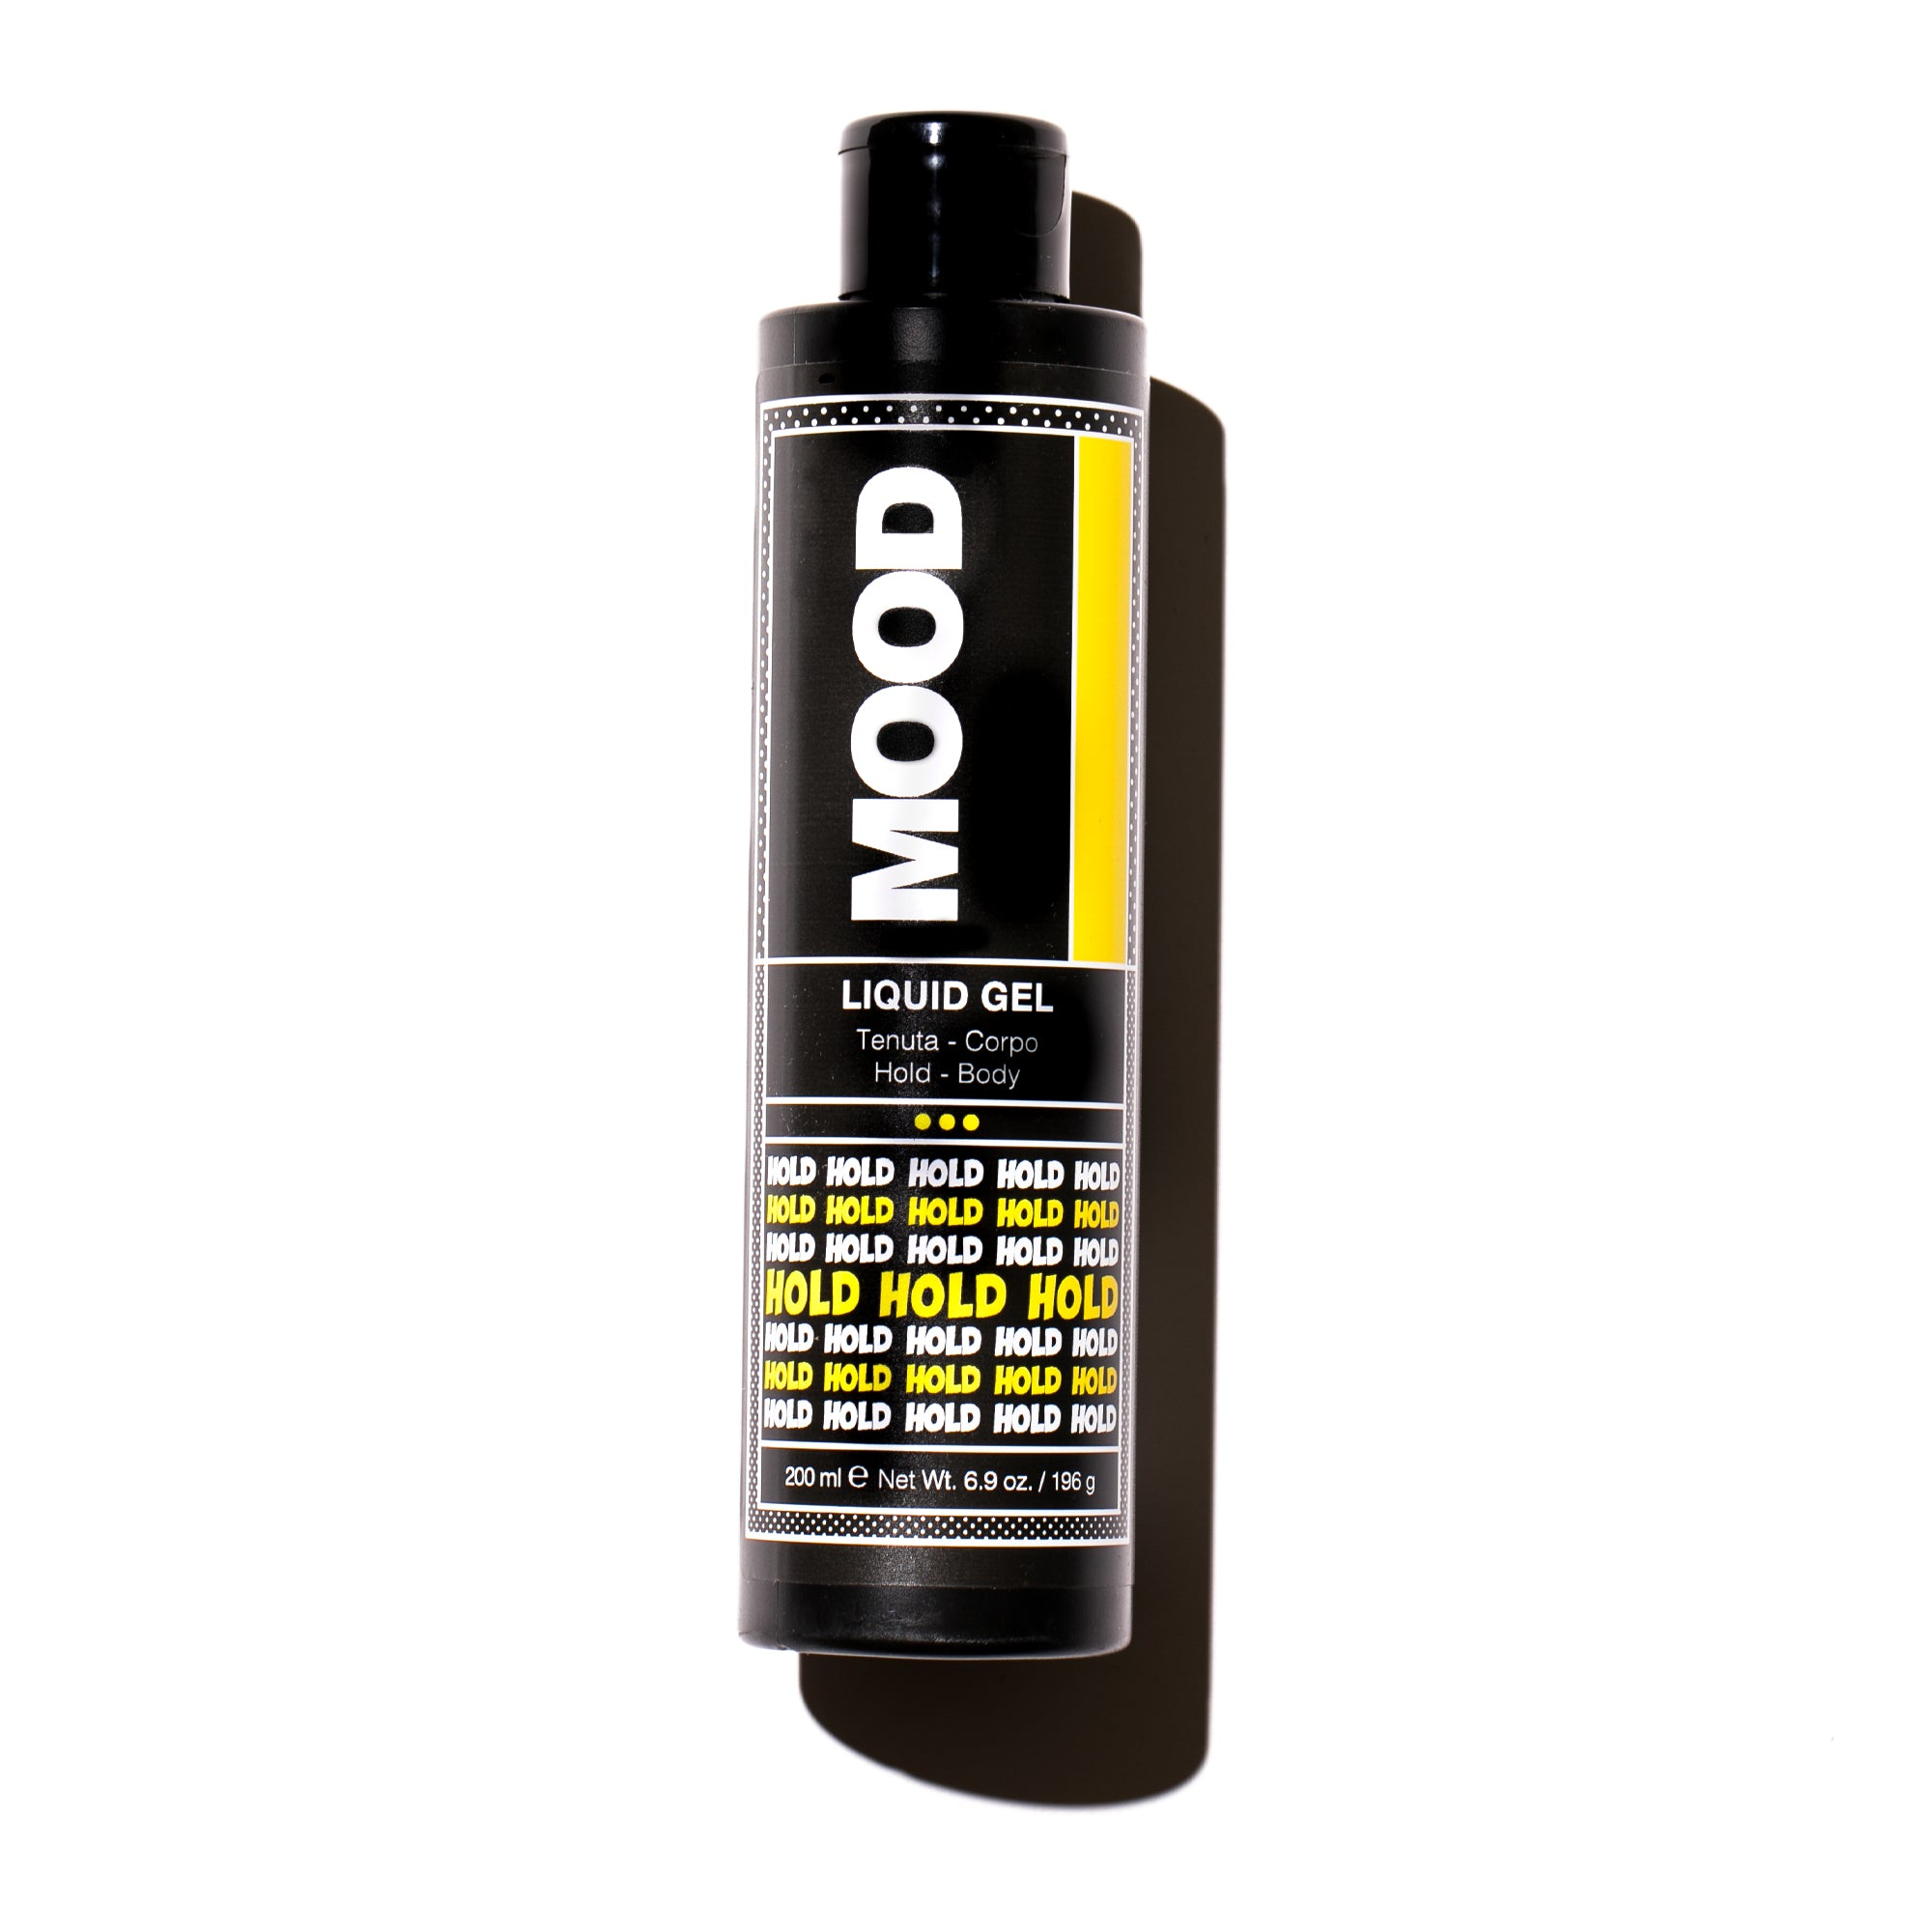 LIQUID GEL 200 ML